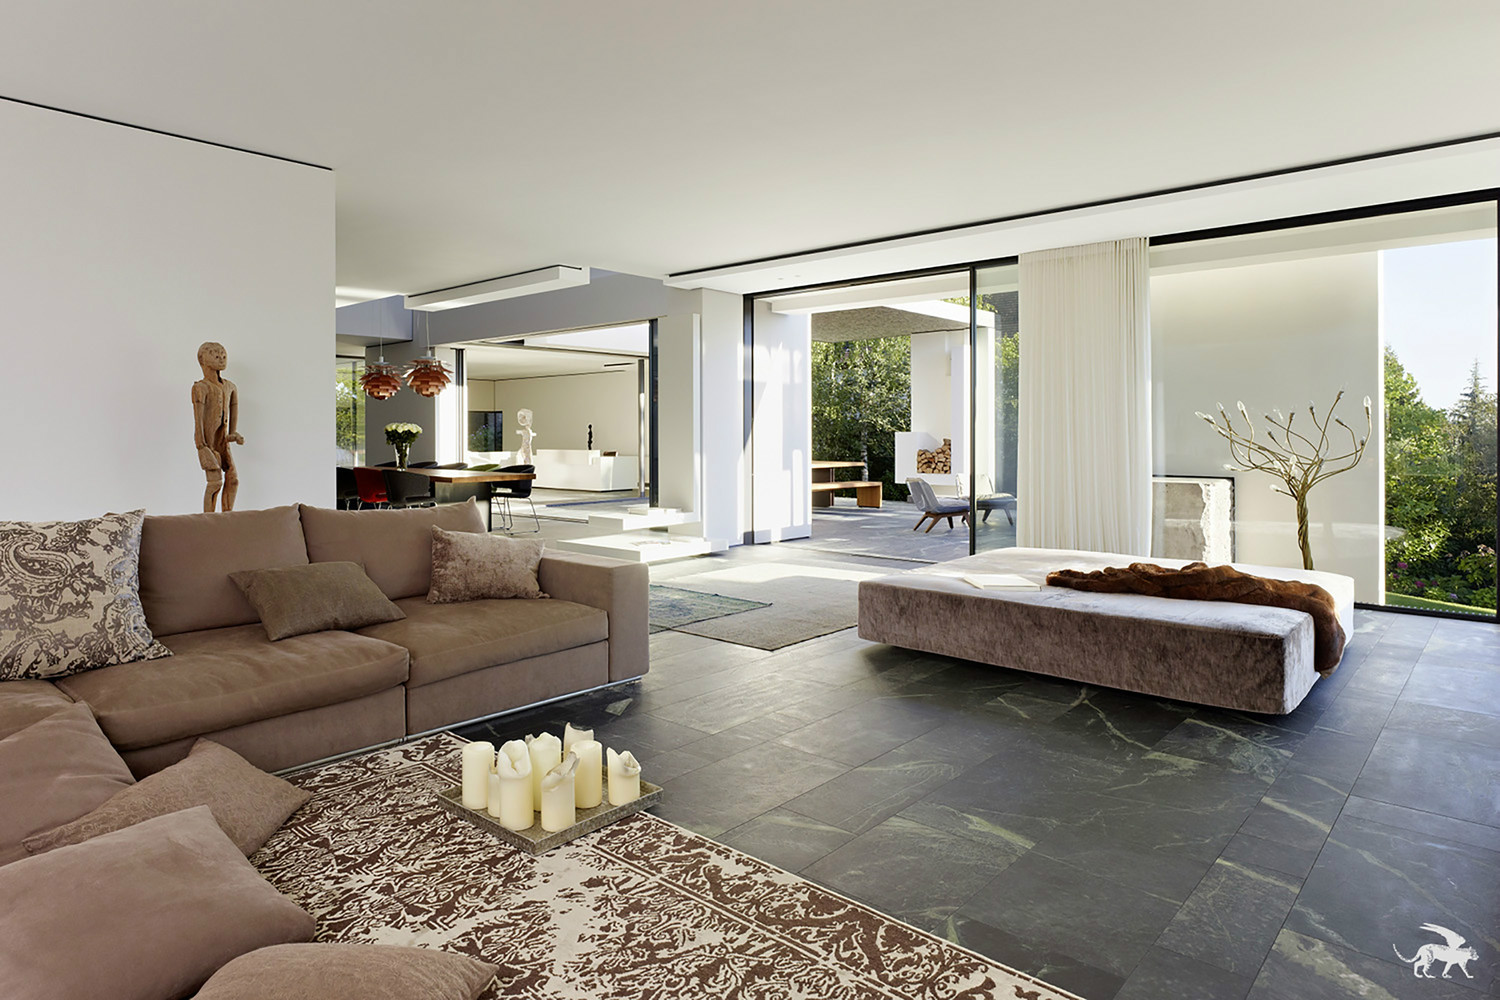 Incredible Design Project by Alexander Brenner Architects